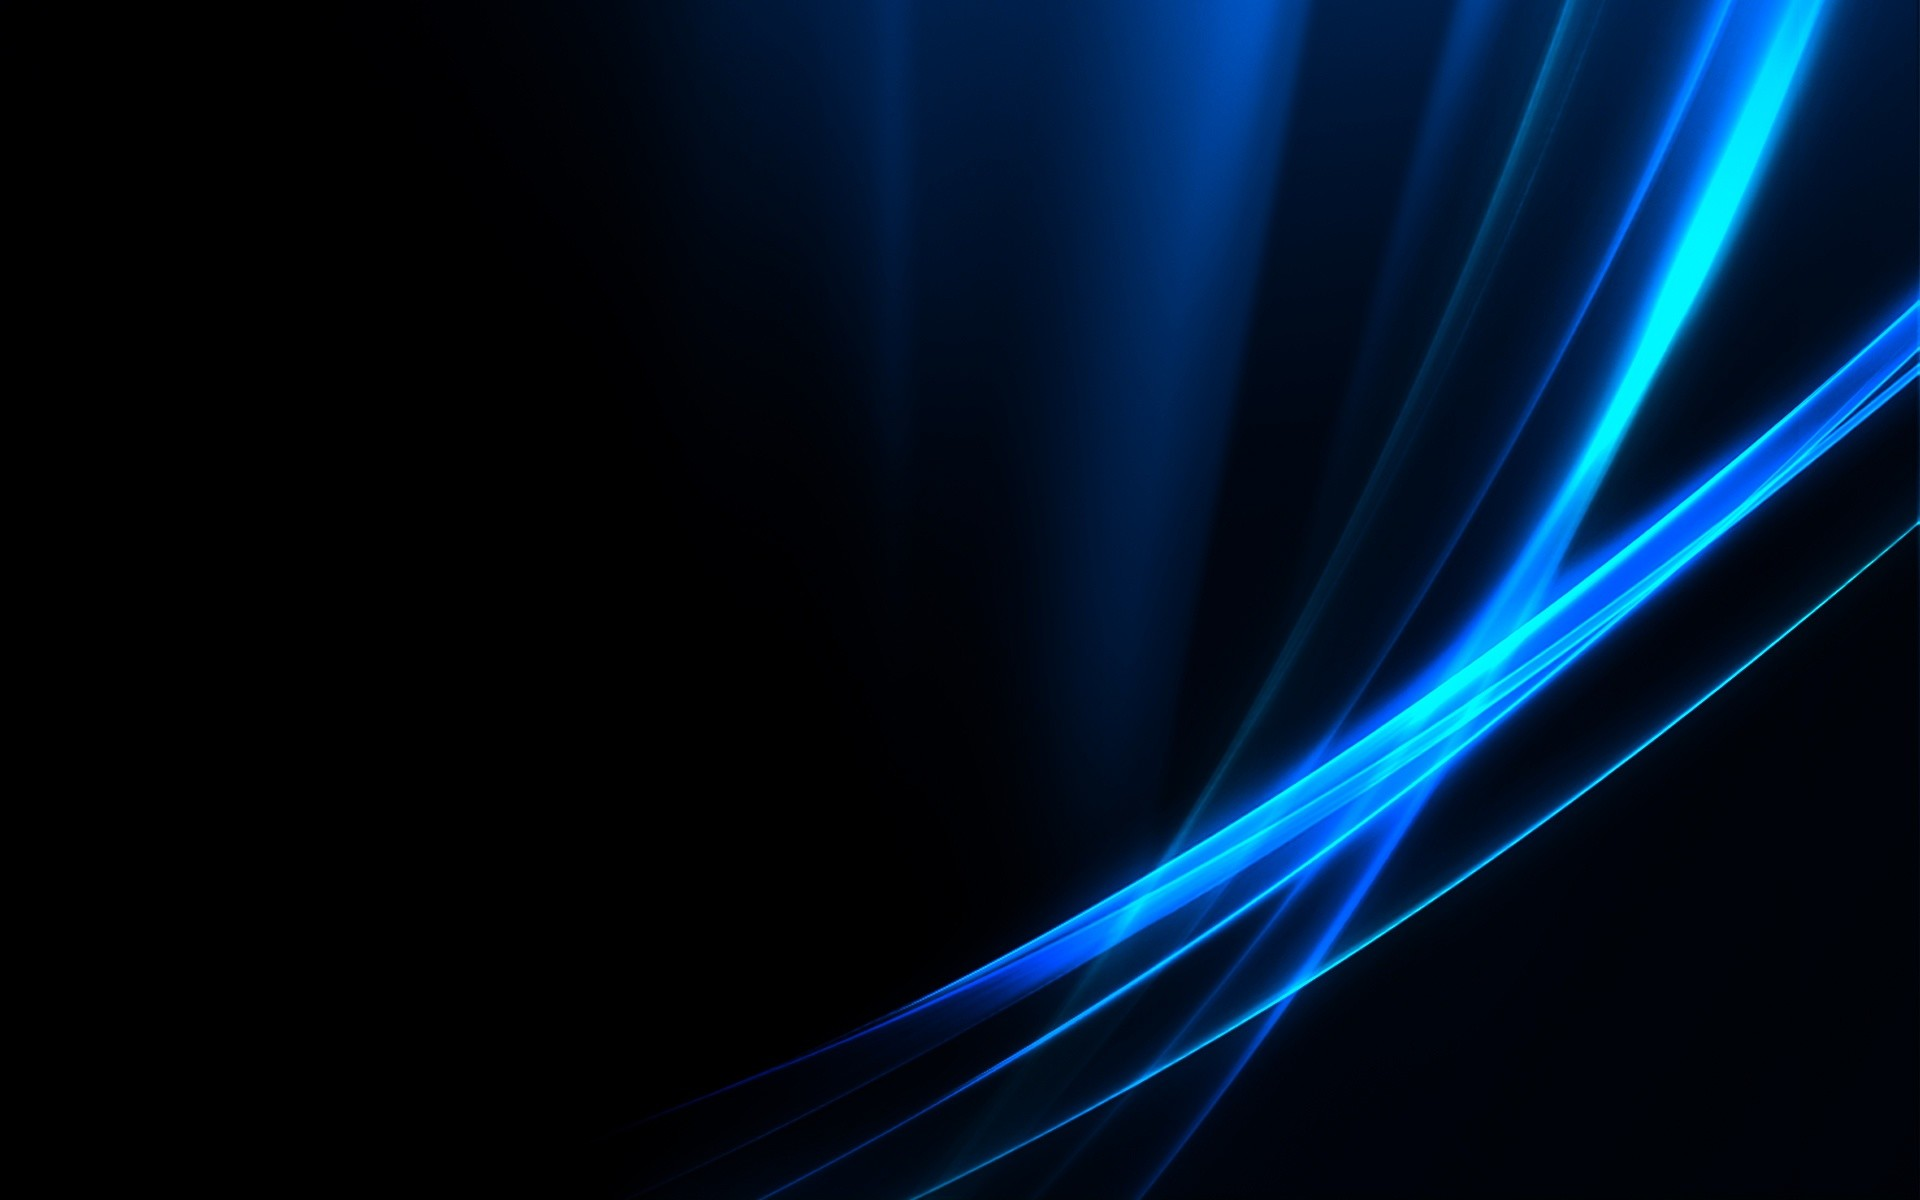 Android Backgrounds: Android Wallpaper Blue (78+ Images